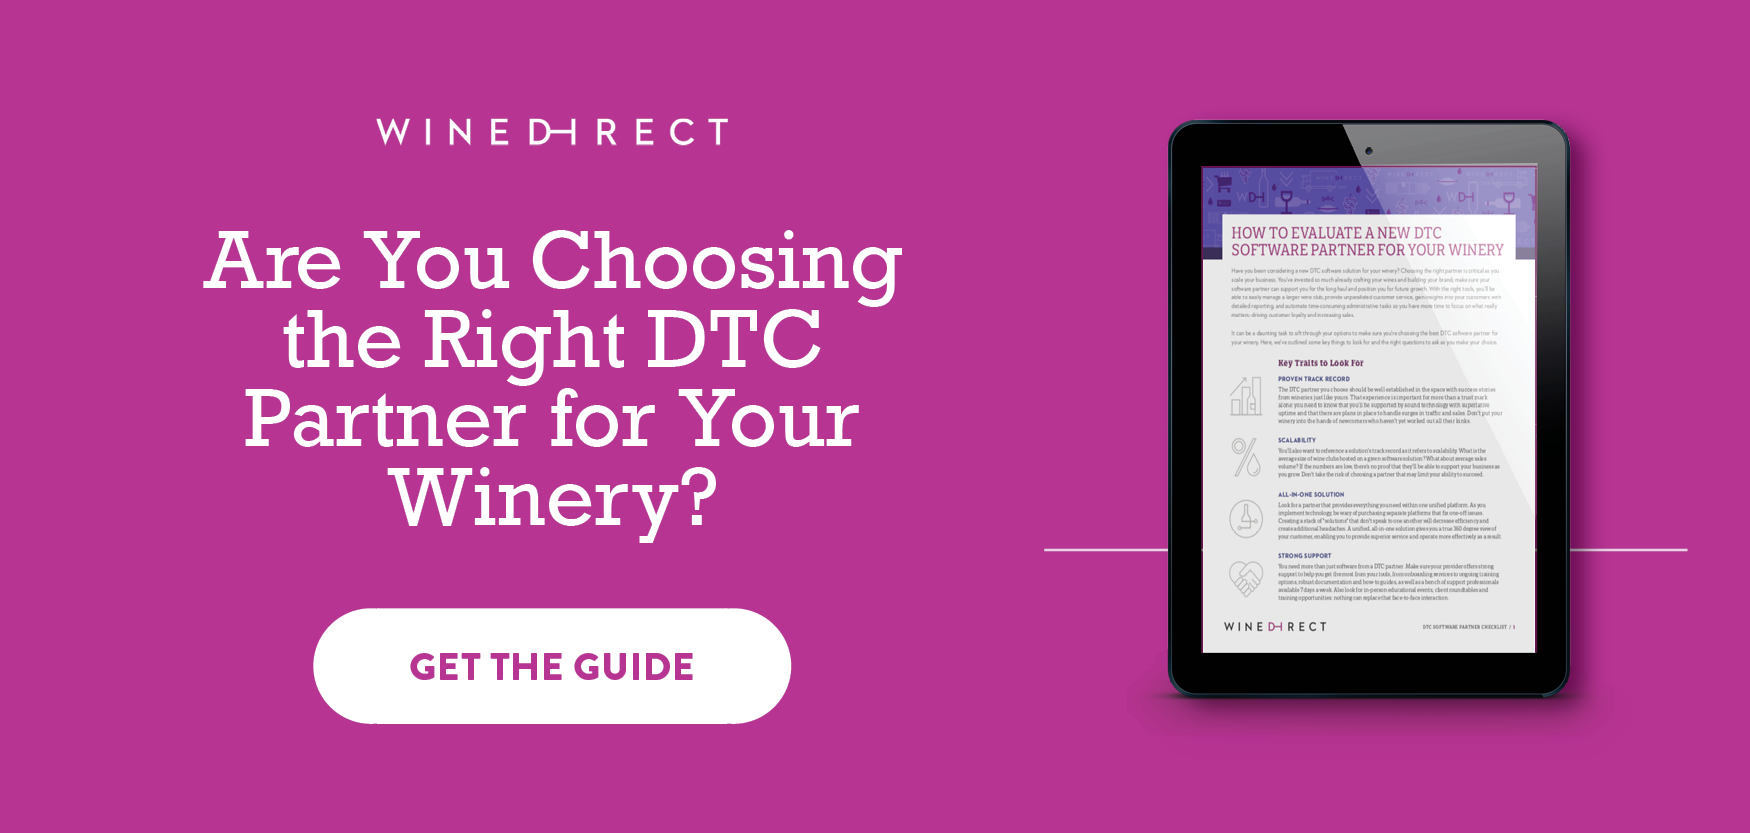 Are You Choosing the Right DTC Partner for Your Winery?